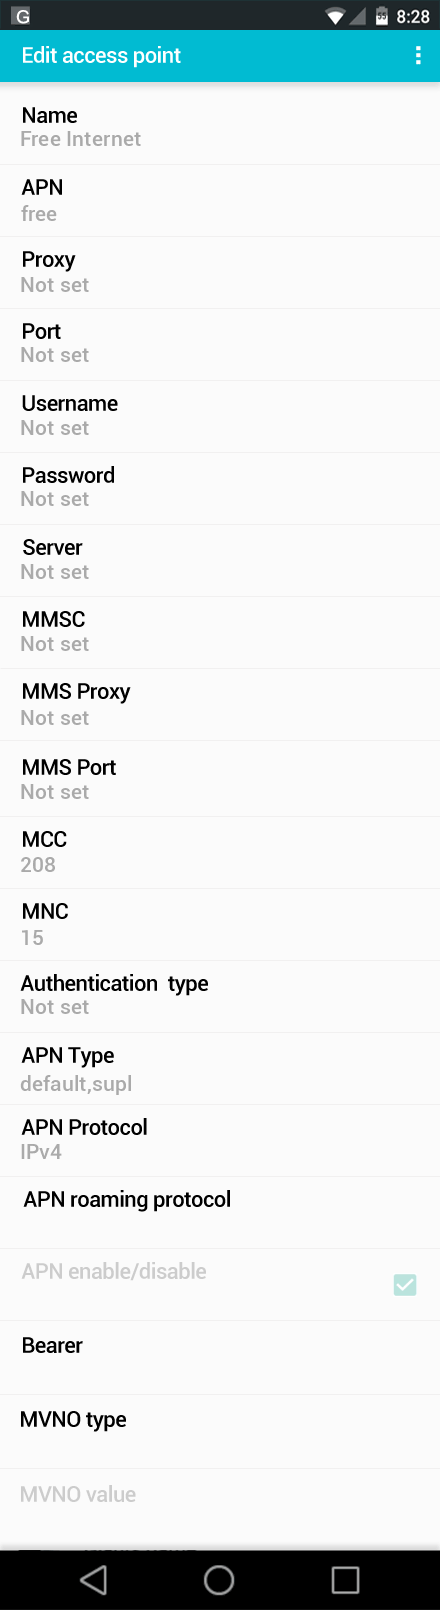 Free Internet APN settings for Android screenshot